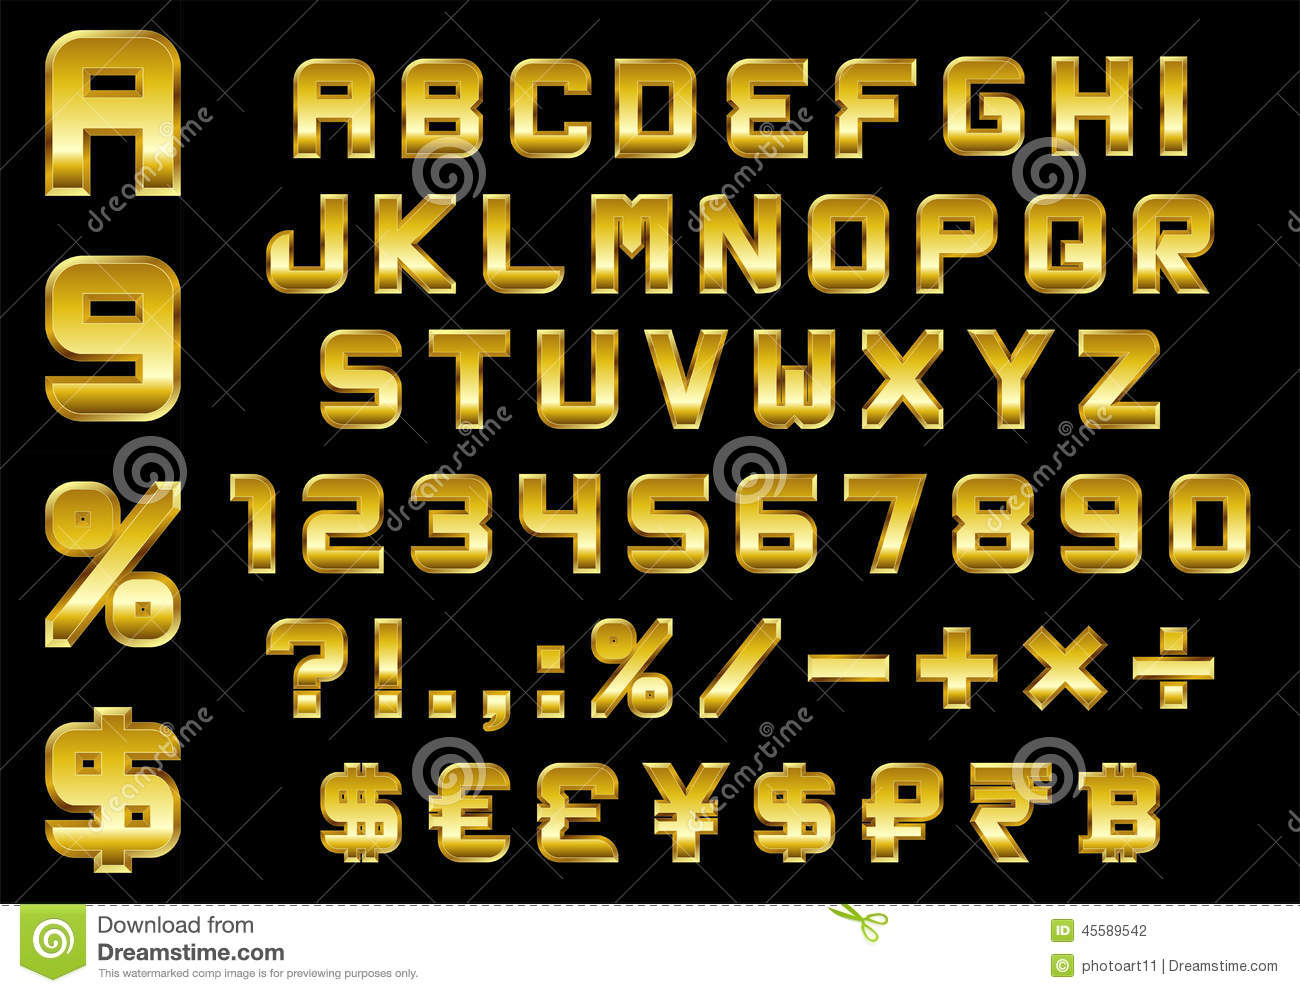 7 Money Number Font Images